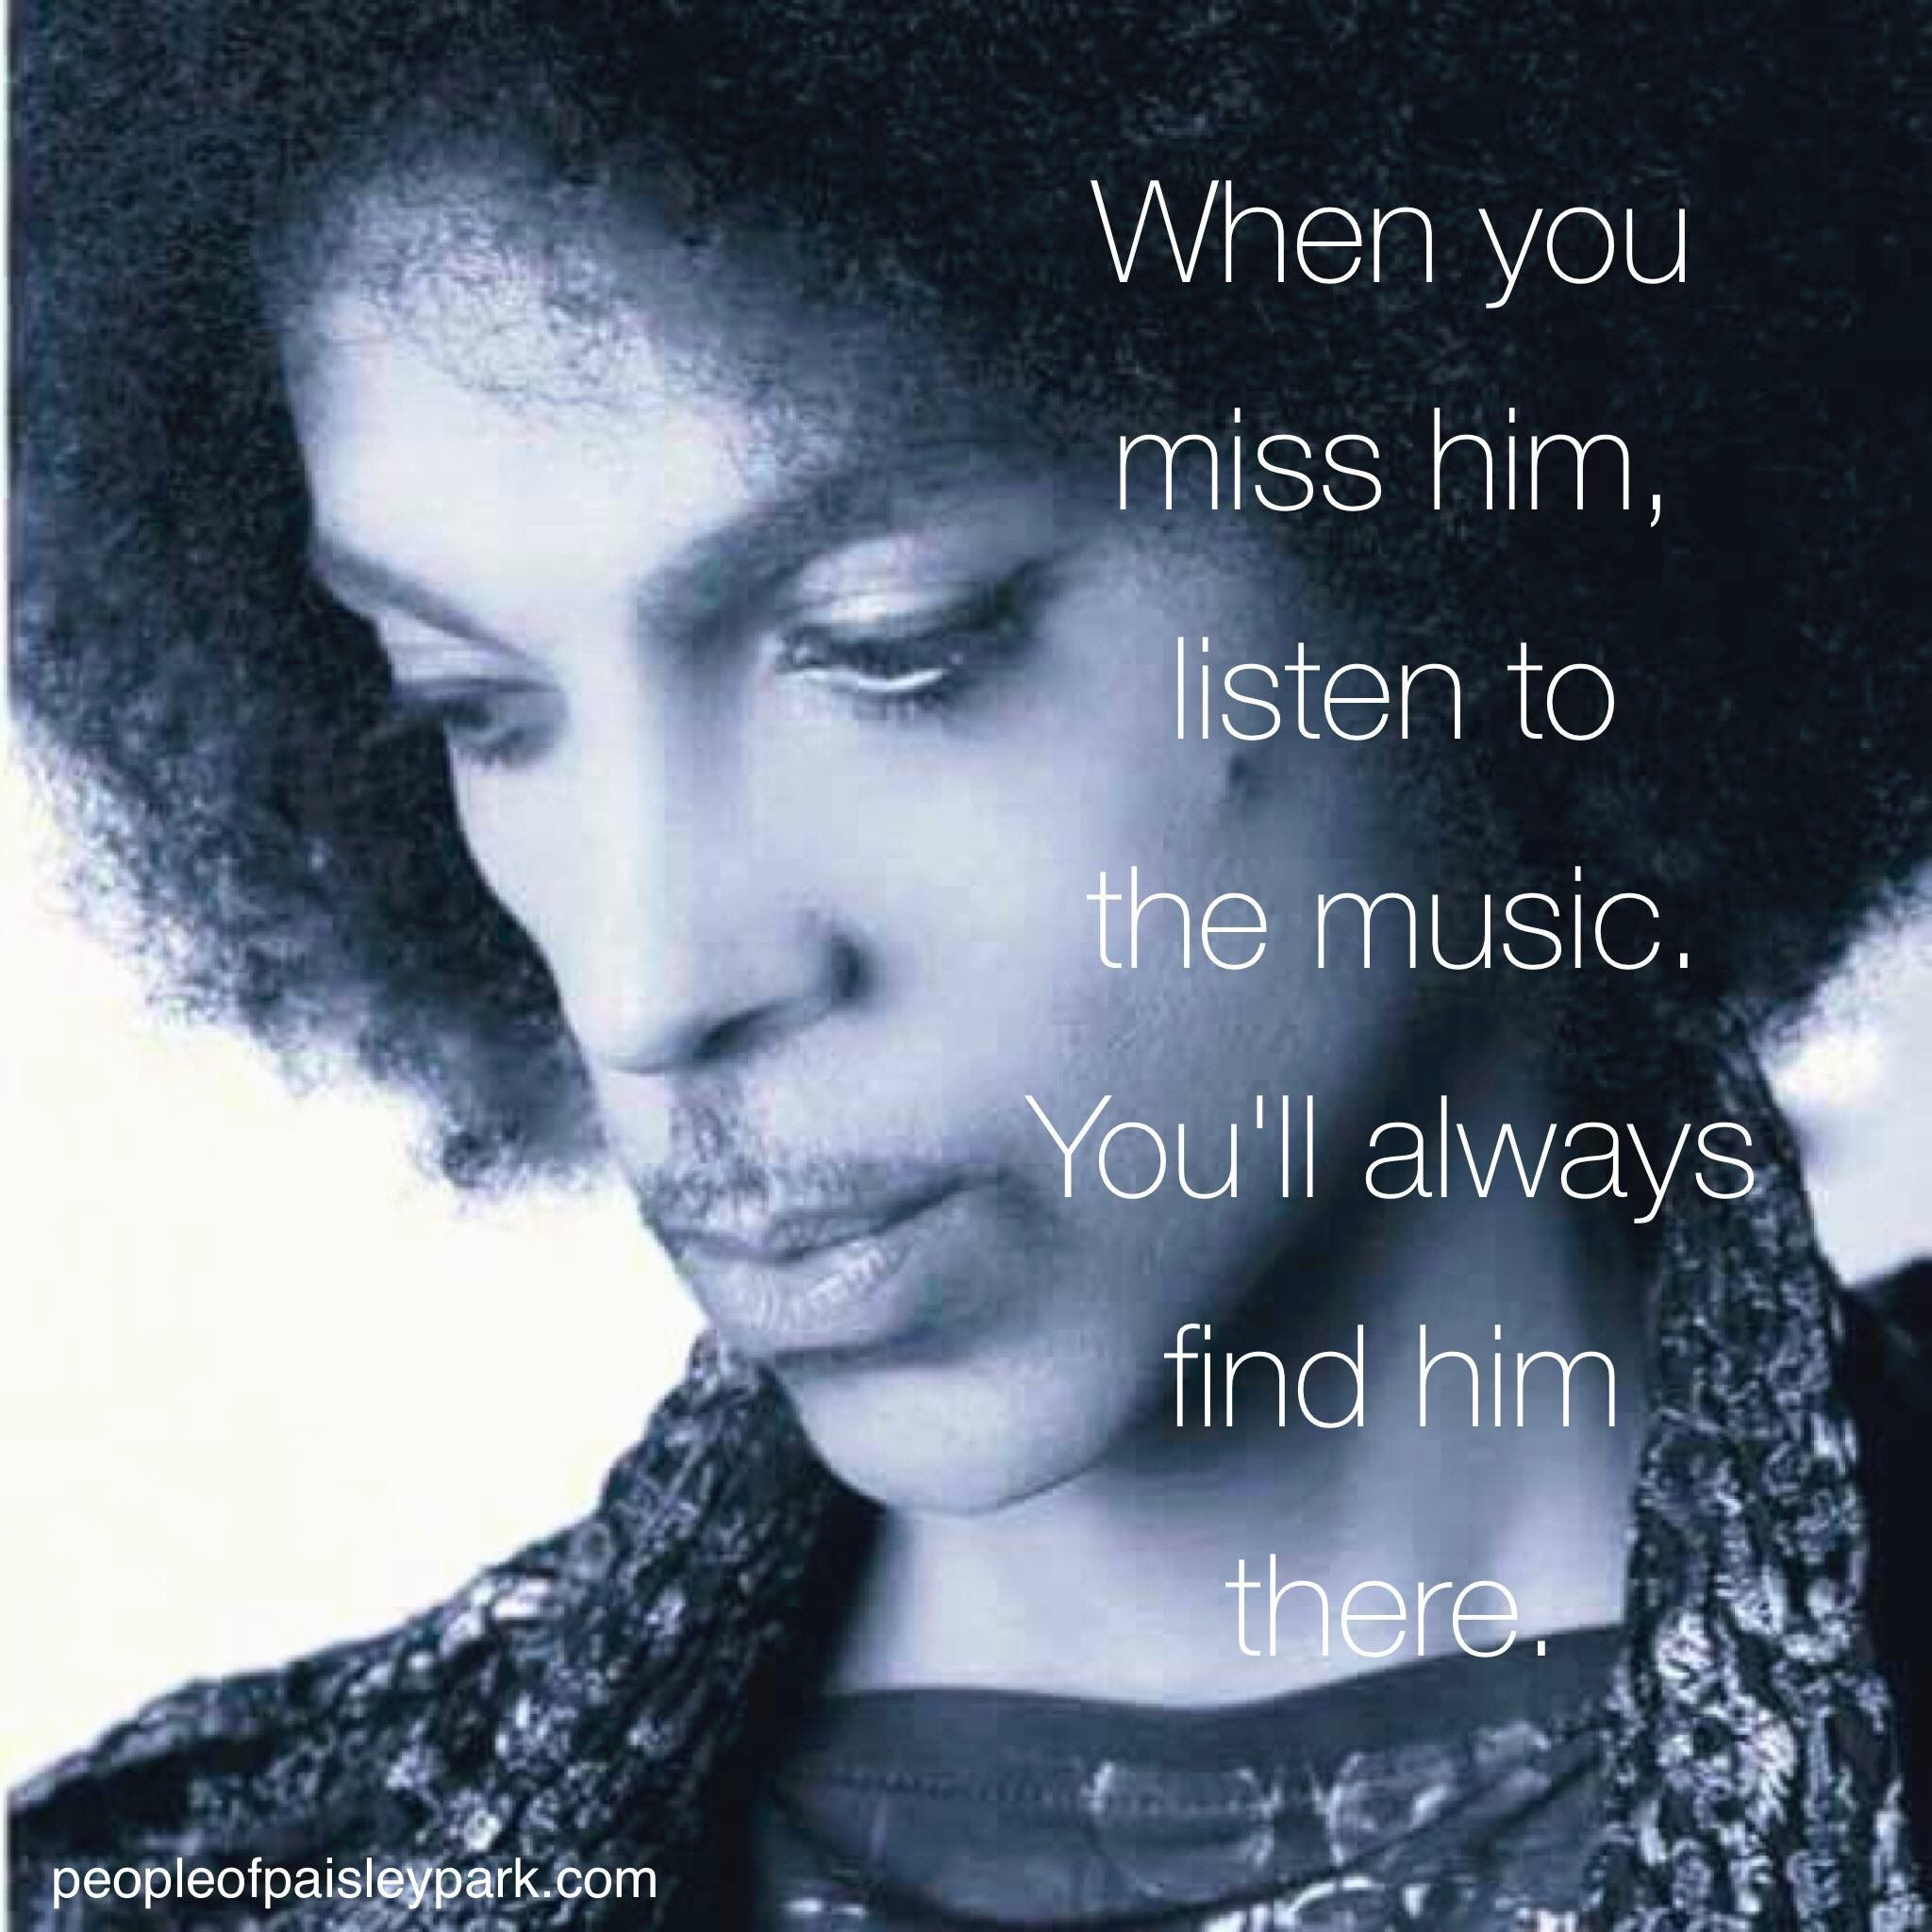 Pin By Wendy Trahan On Prince Prince Quotes Prince Music The Artist Prince